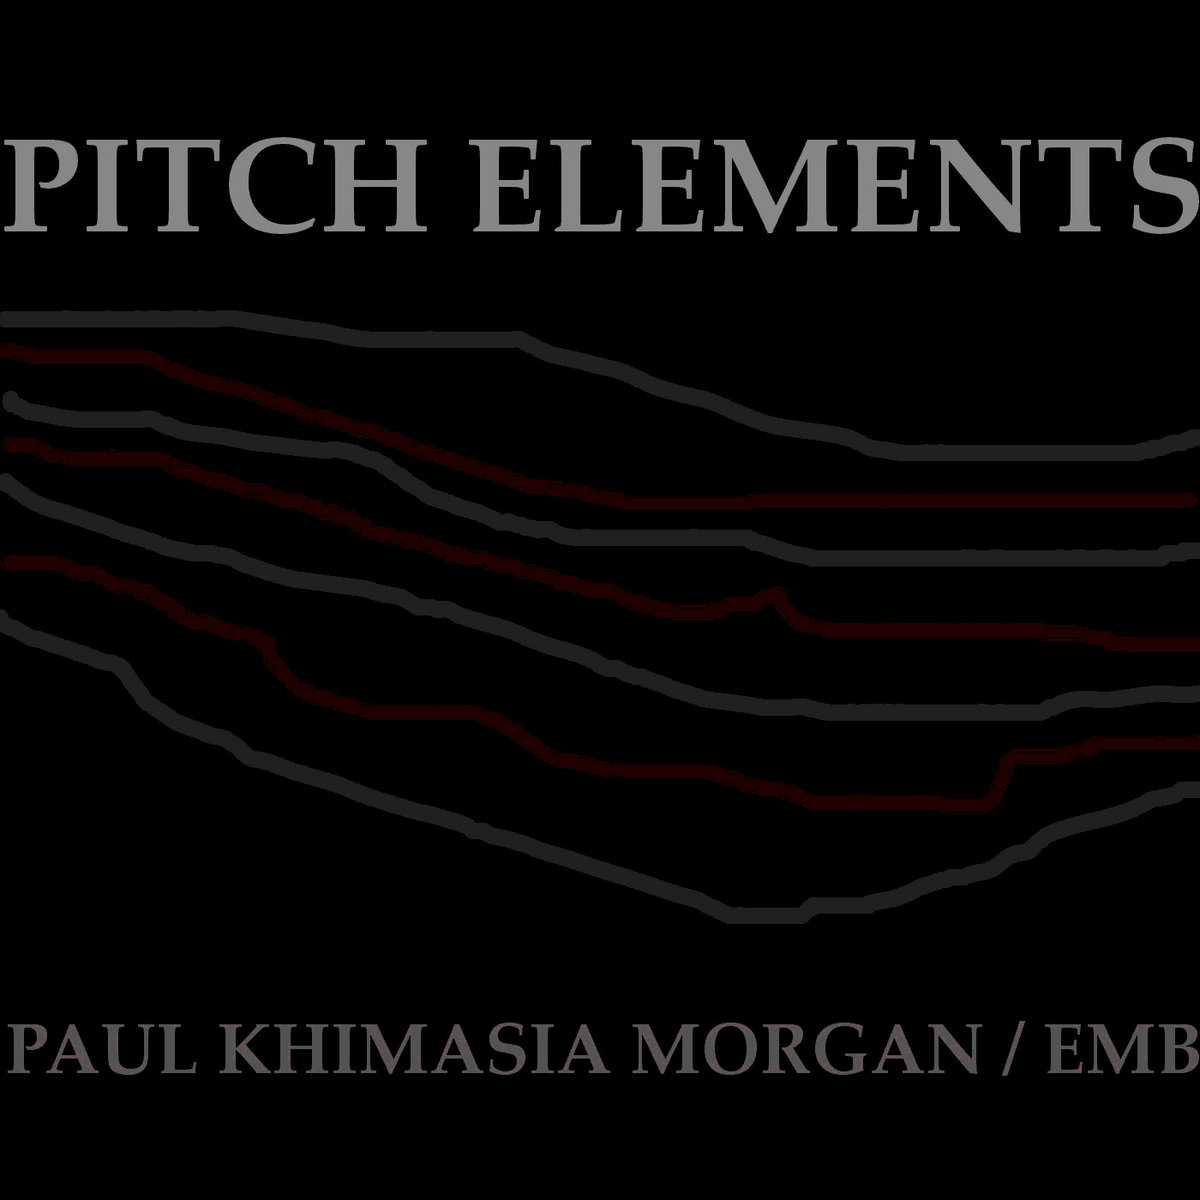 Pitch Elements Slightly Off Kilter Emb Current Relay By Paul Khimasia Morgan